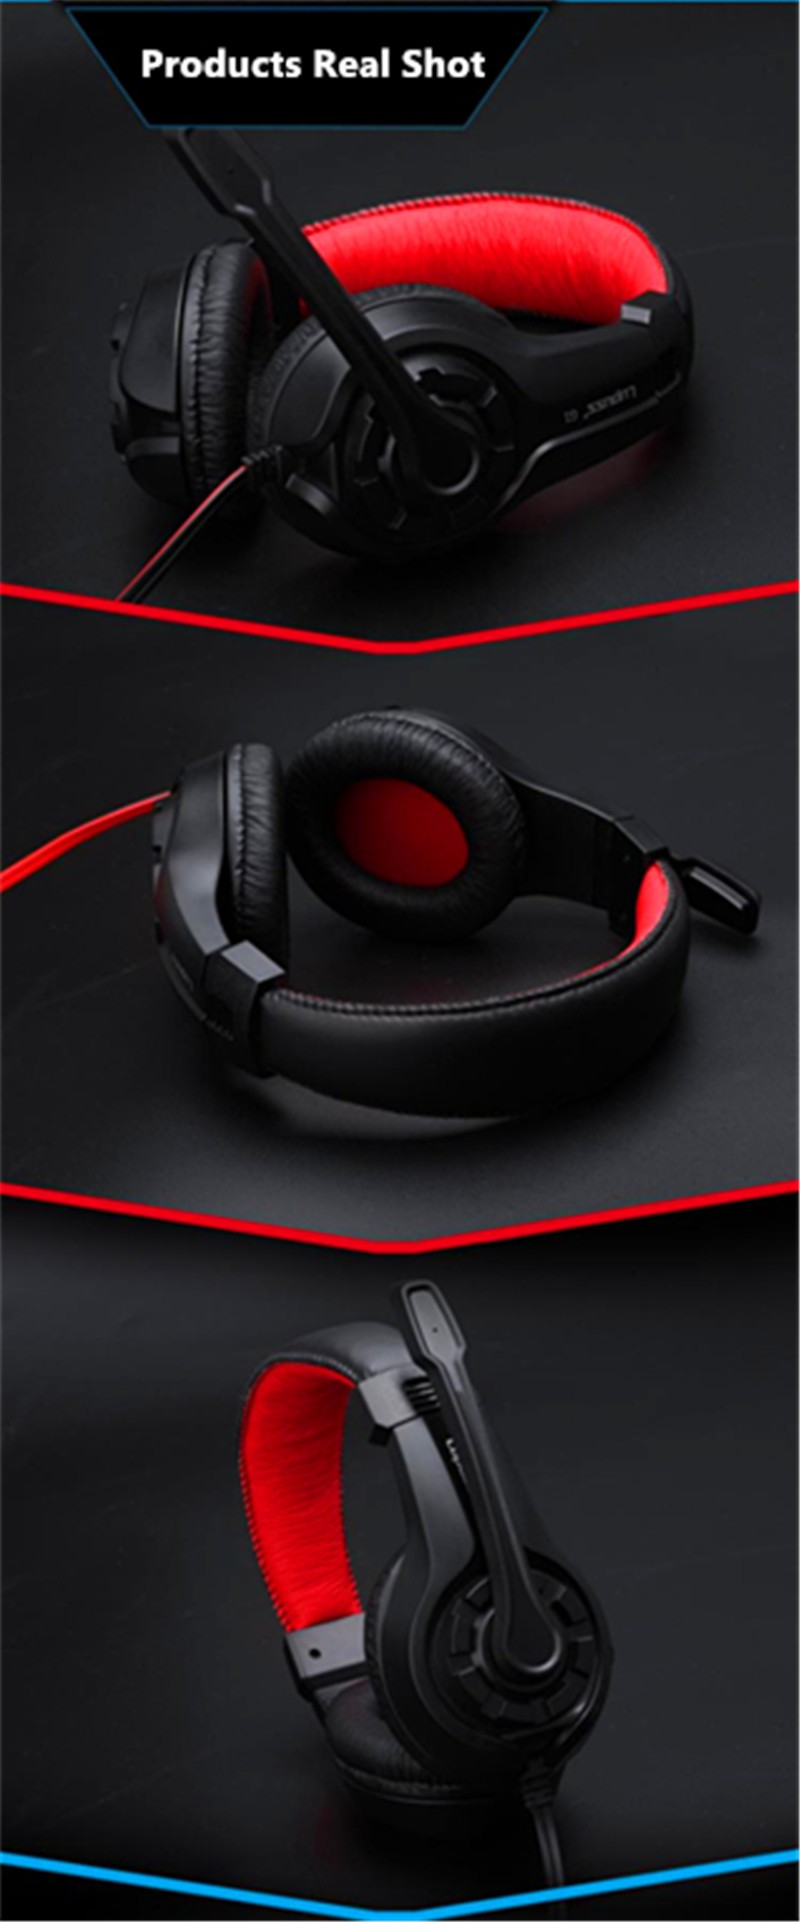 2016 Original LPS G1 Music Super Bass Gaming Headset casque Audio Earphone Light Headphone with Micorphone for Computer PC gamer